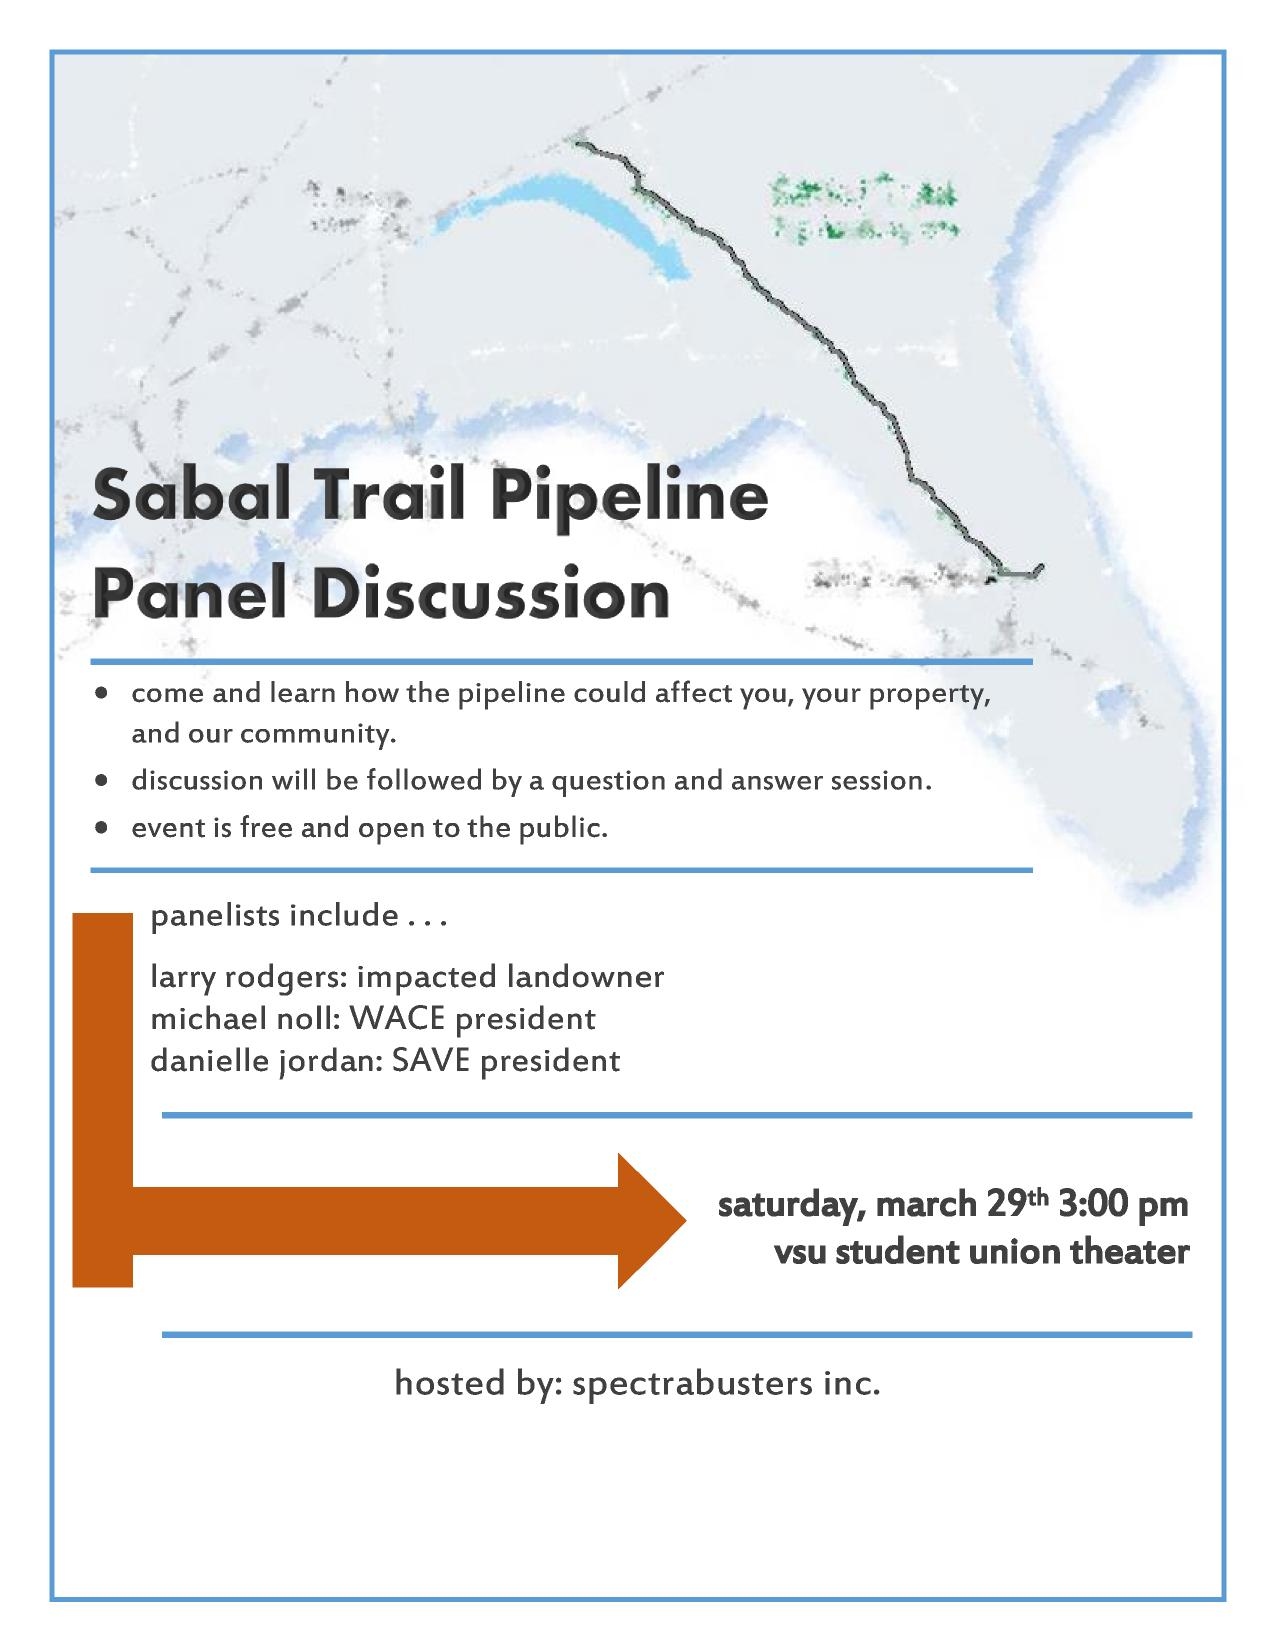 1275x1650 Discussion followed by questions and answers, in Sabal Trail Pipeline Panel Discussion, by Danielle Jordan, for SpectraBusters.org, 29 March 2014